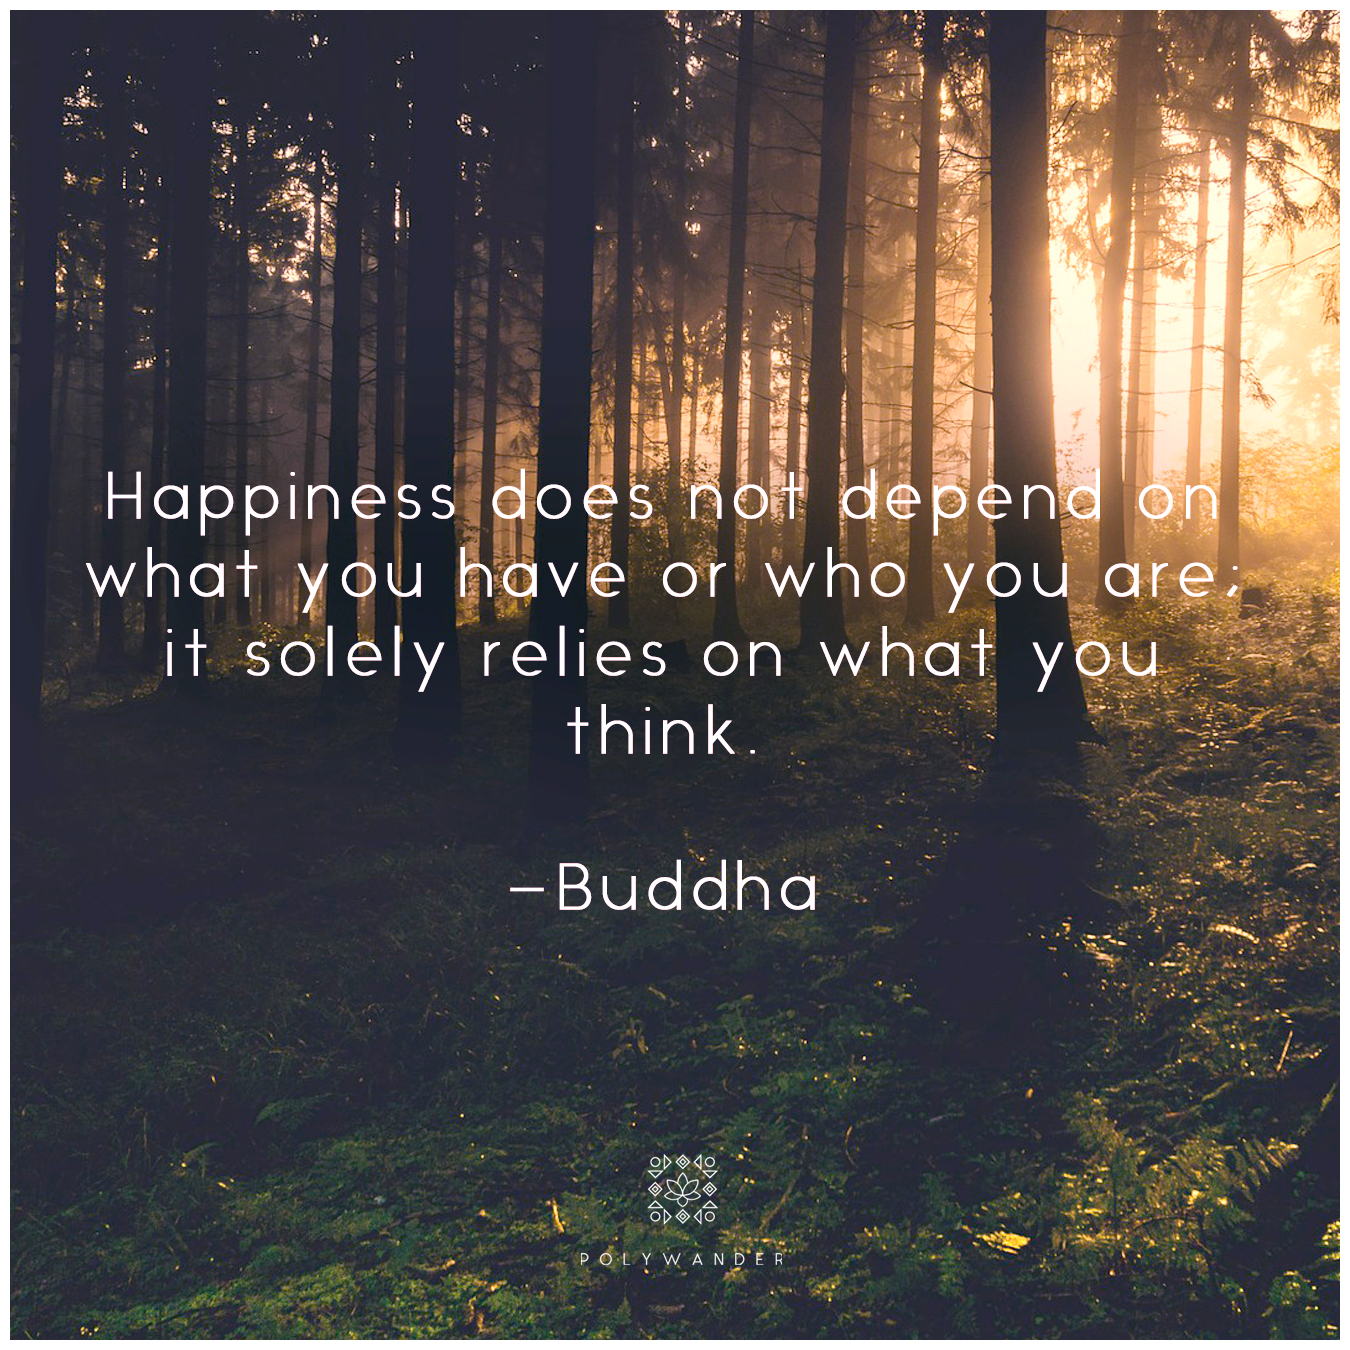 """Happiness does not depend on what you have or who you are; it solely relies on what you think."" Buddha"